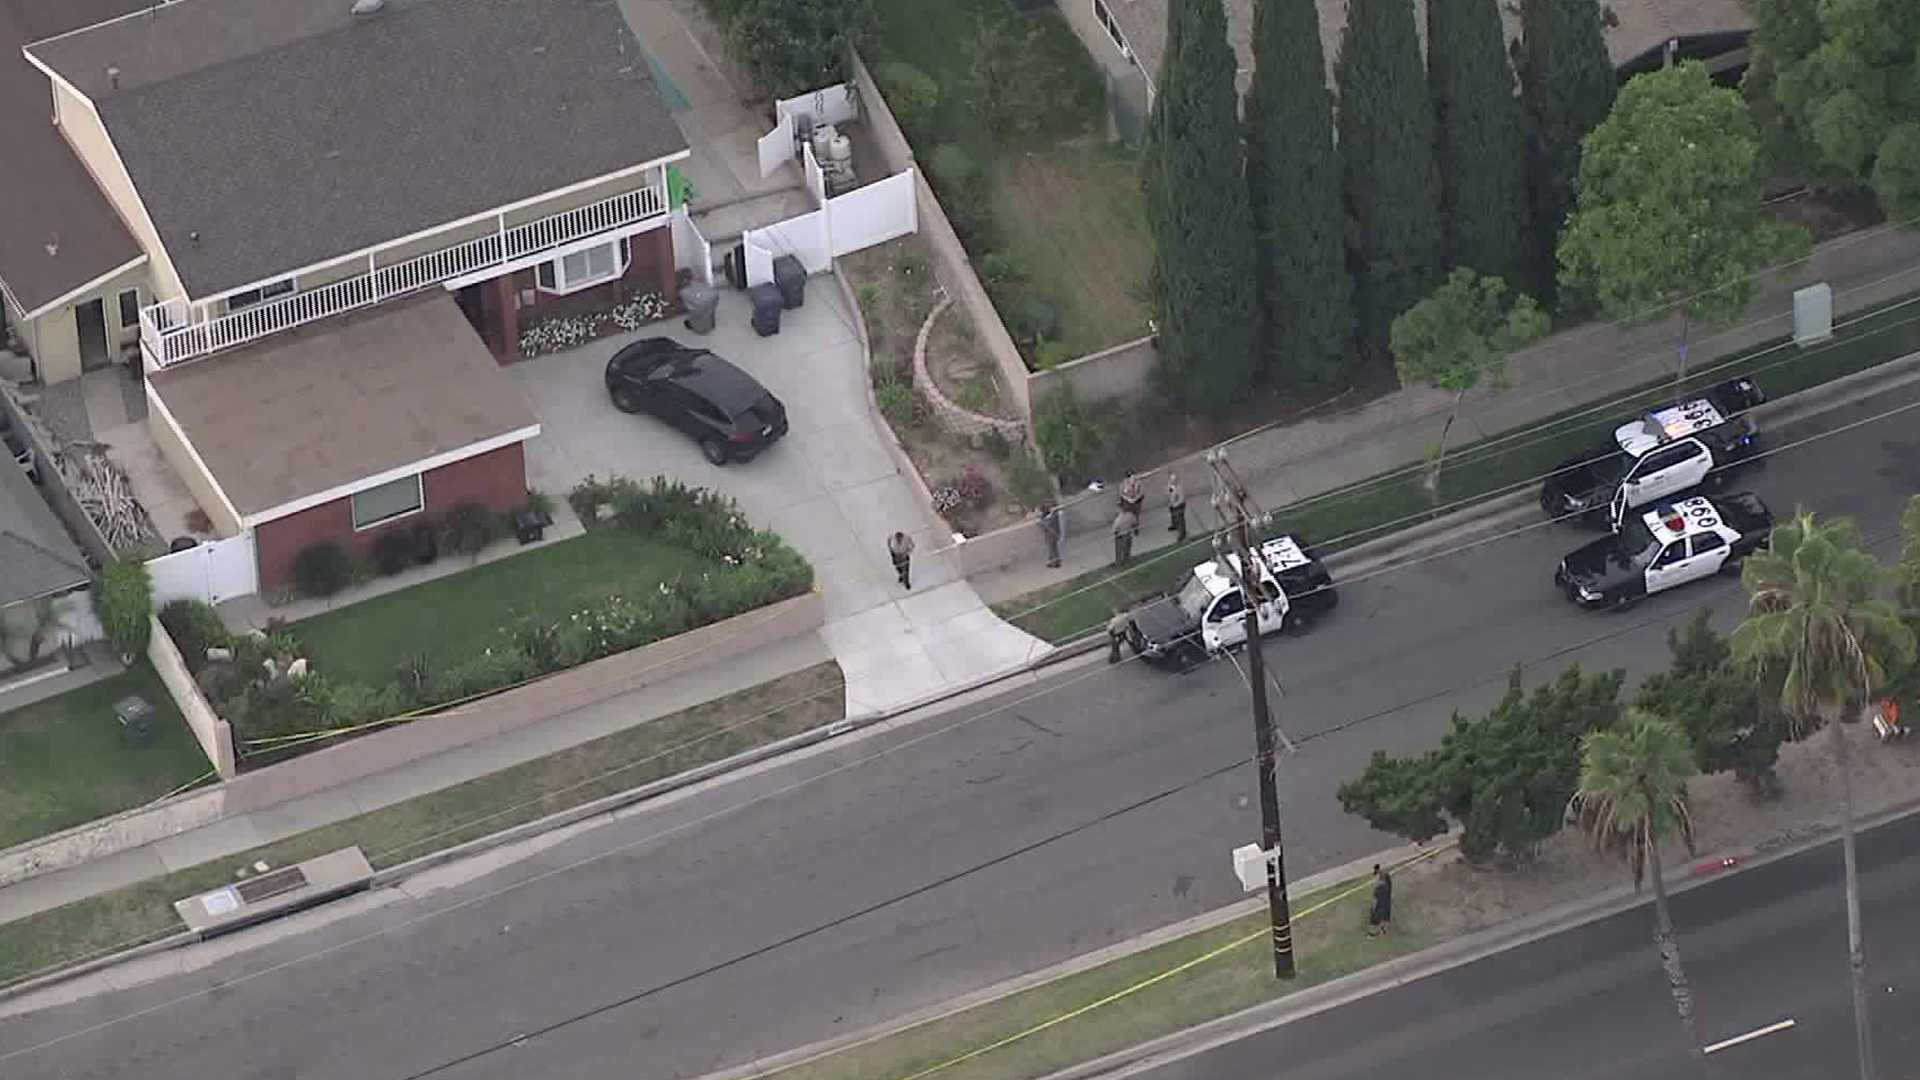 Homicide investigators respond to a Rancho Palos Verdes home after a woman was found dead there on Sept. 26, 2019. (Credit: KTLA)